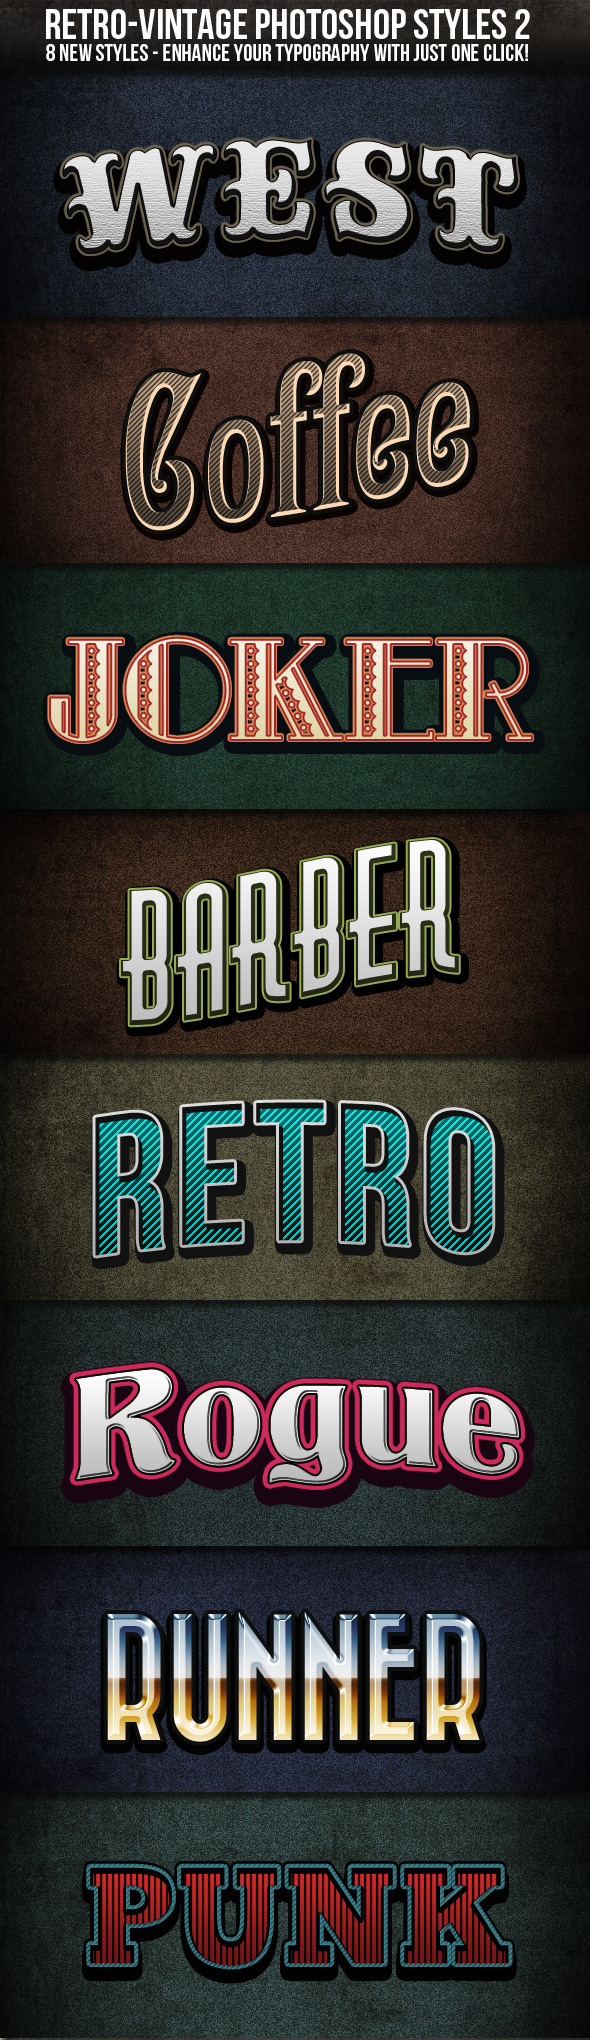 Retro-Vintage Styles 2 - Photoshop Add-ons